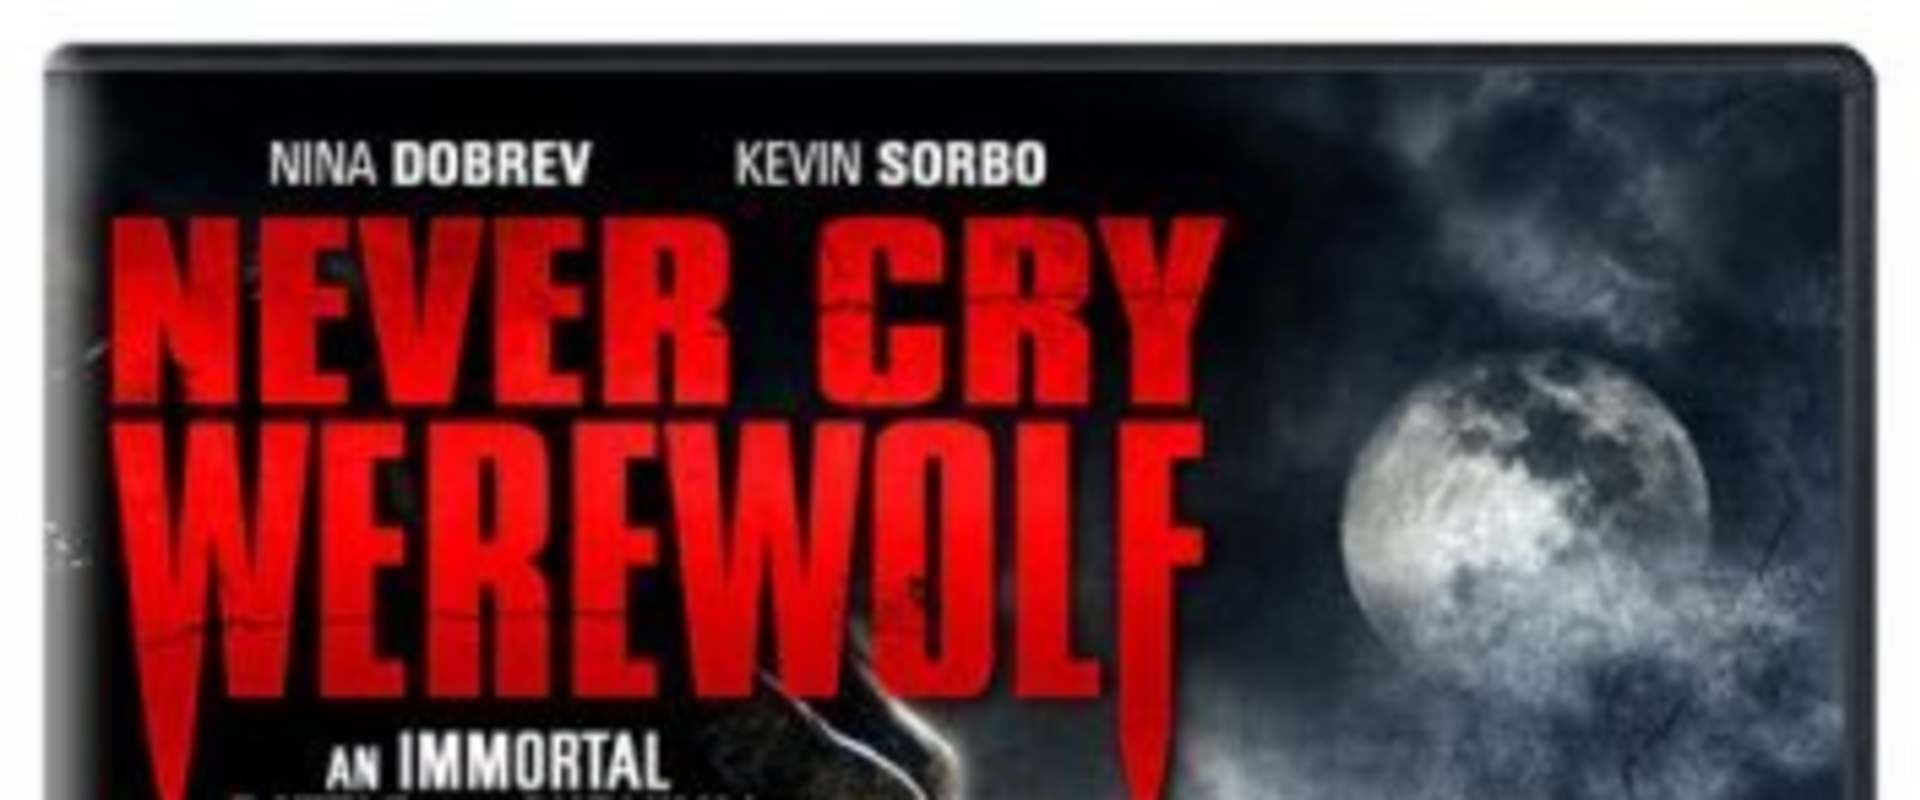 Never Cry Werewolf background 1